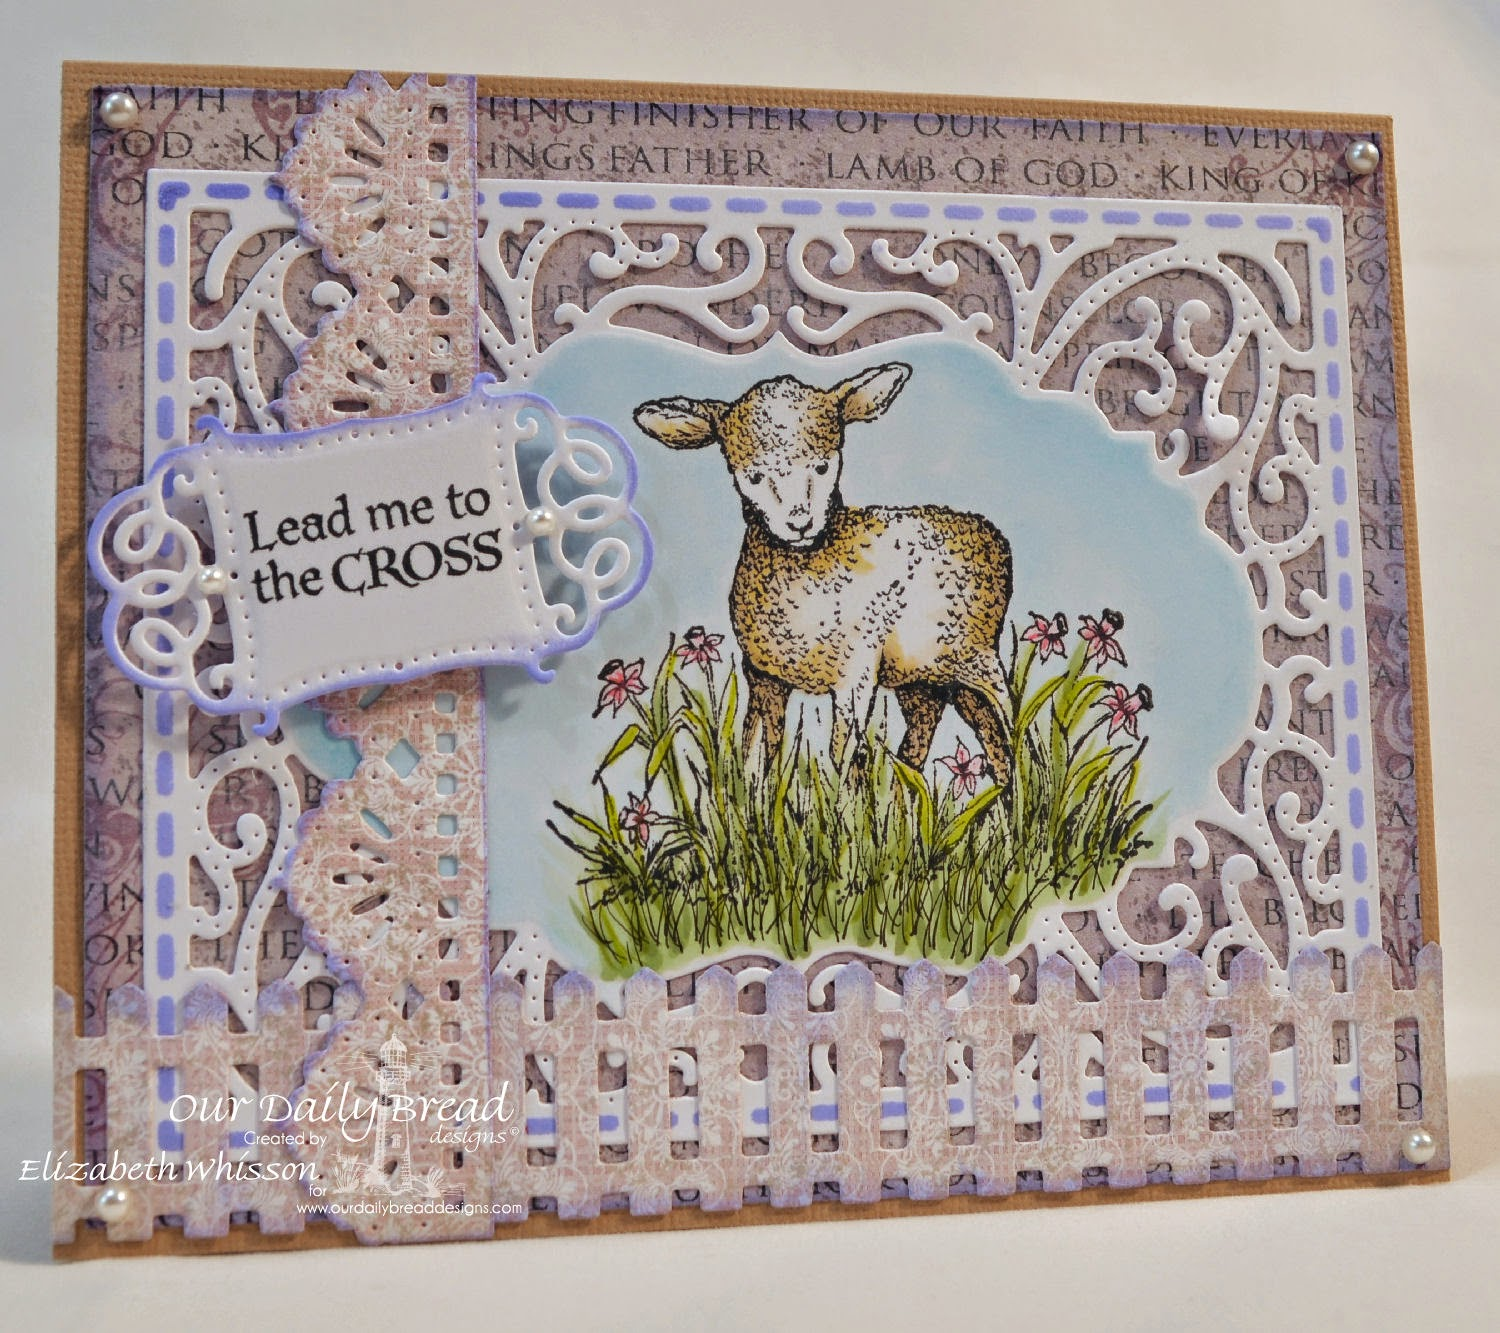 Elizabeth Whisson, Our Daily Bread Designs, ODBD Custom Vintage Flourish Pattern Dies, ODBD Custom Beautiful Borders Dies, Sheep, ODBD Fence Die, ODBD Christian Faith Paper Collection, ODBD Heart and Soul Paper Collection, copics, lead me to the cross, handmade card, Easter